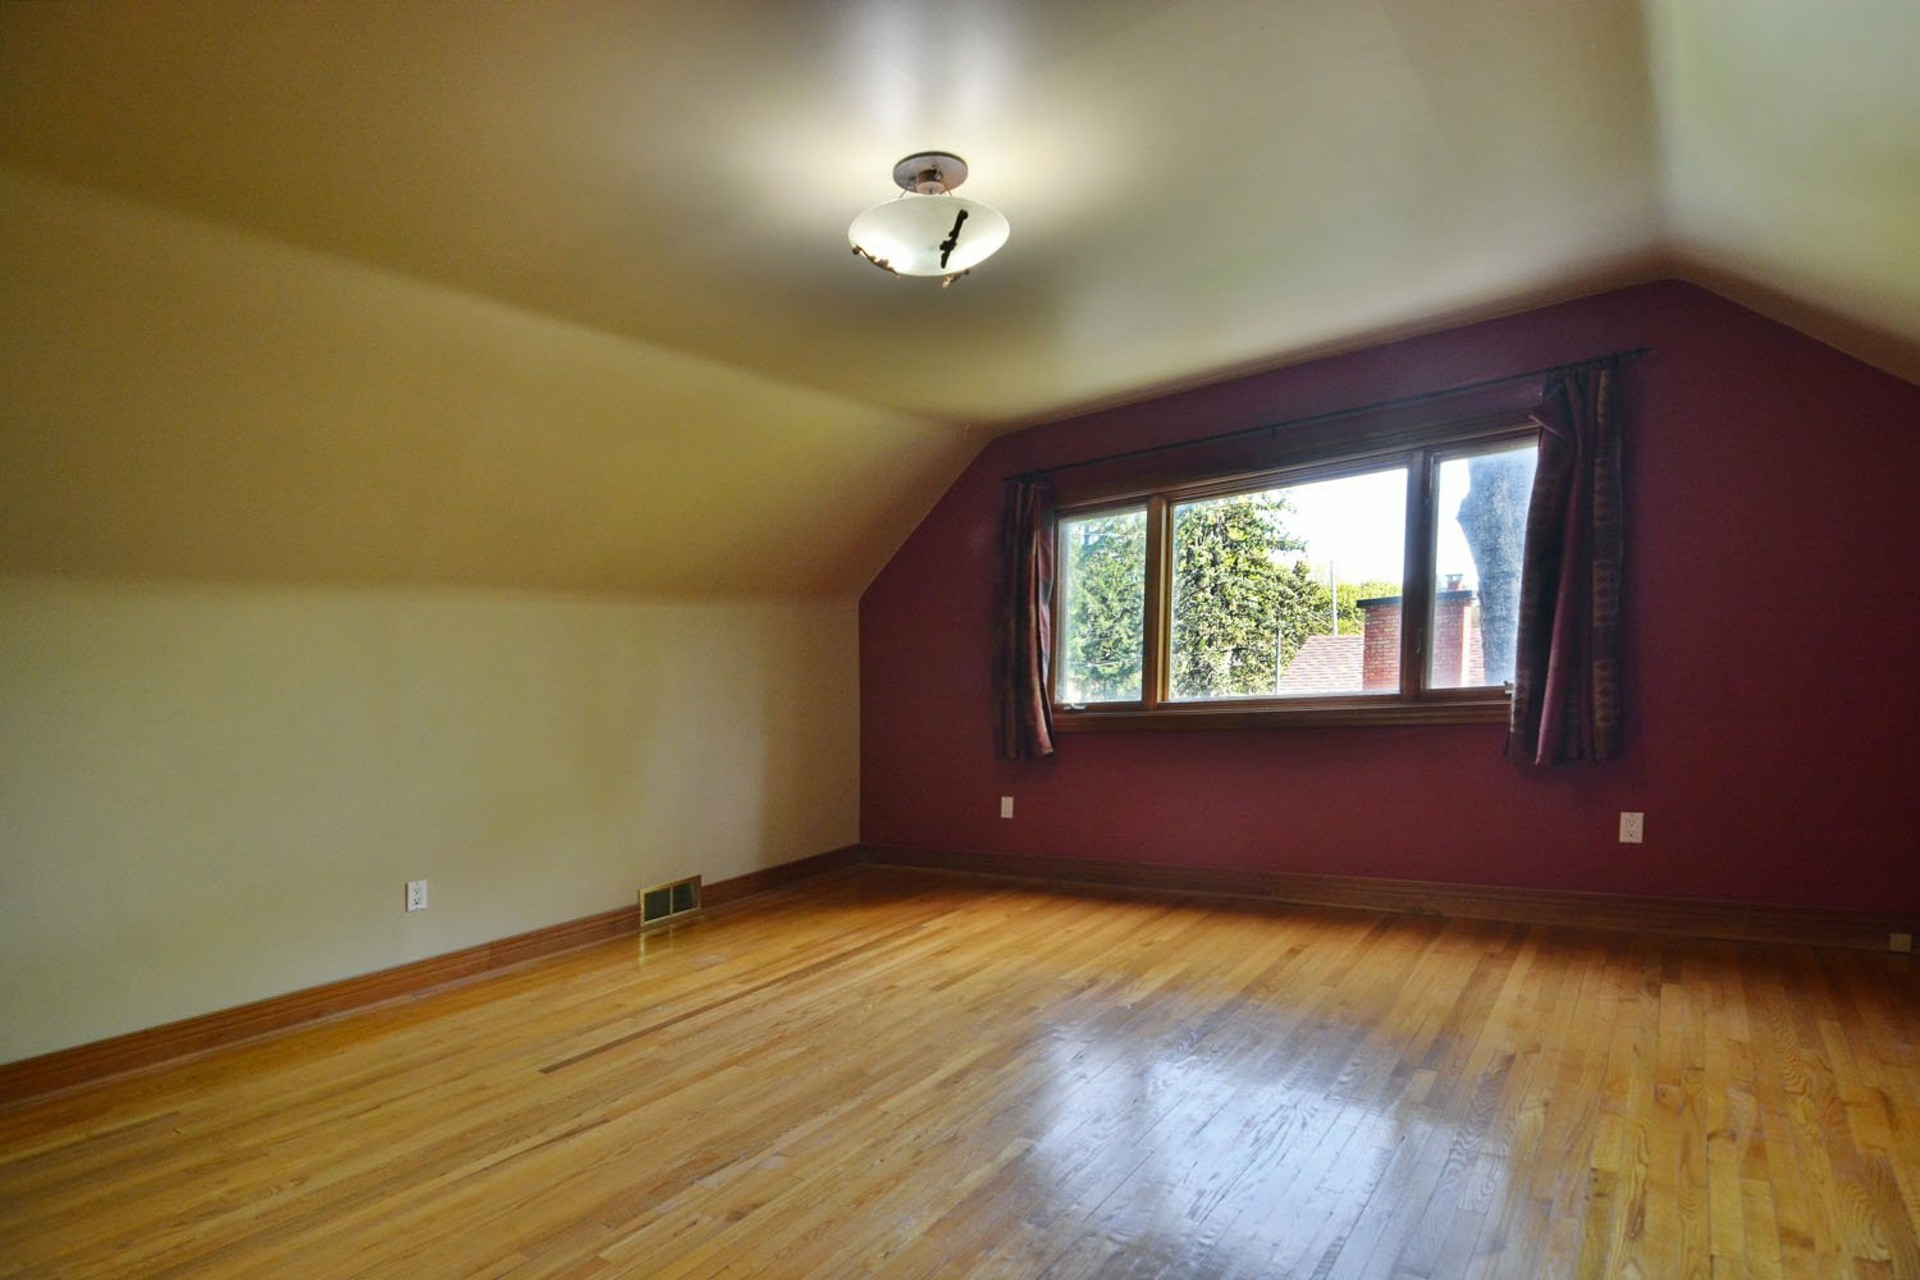 image 10 - House For rent Beaconsfield - 7 rooms